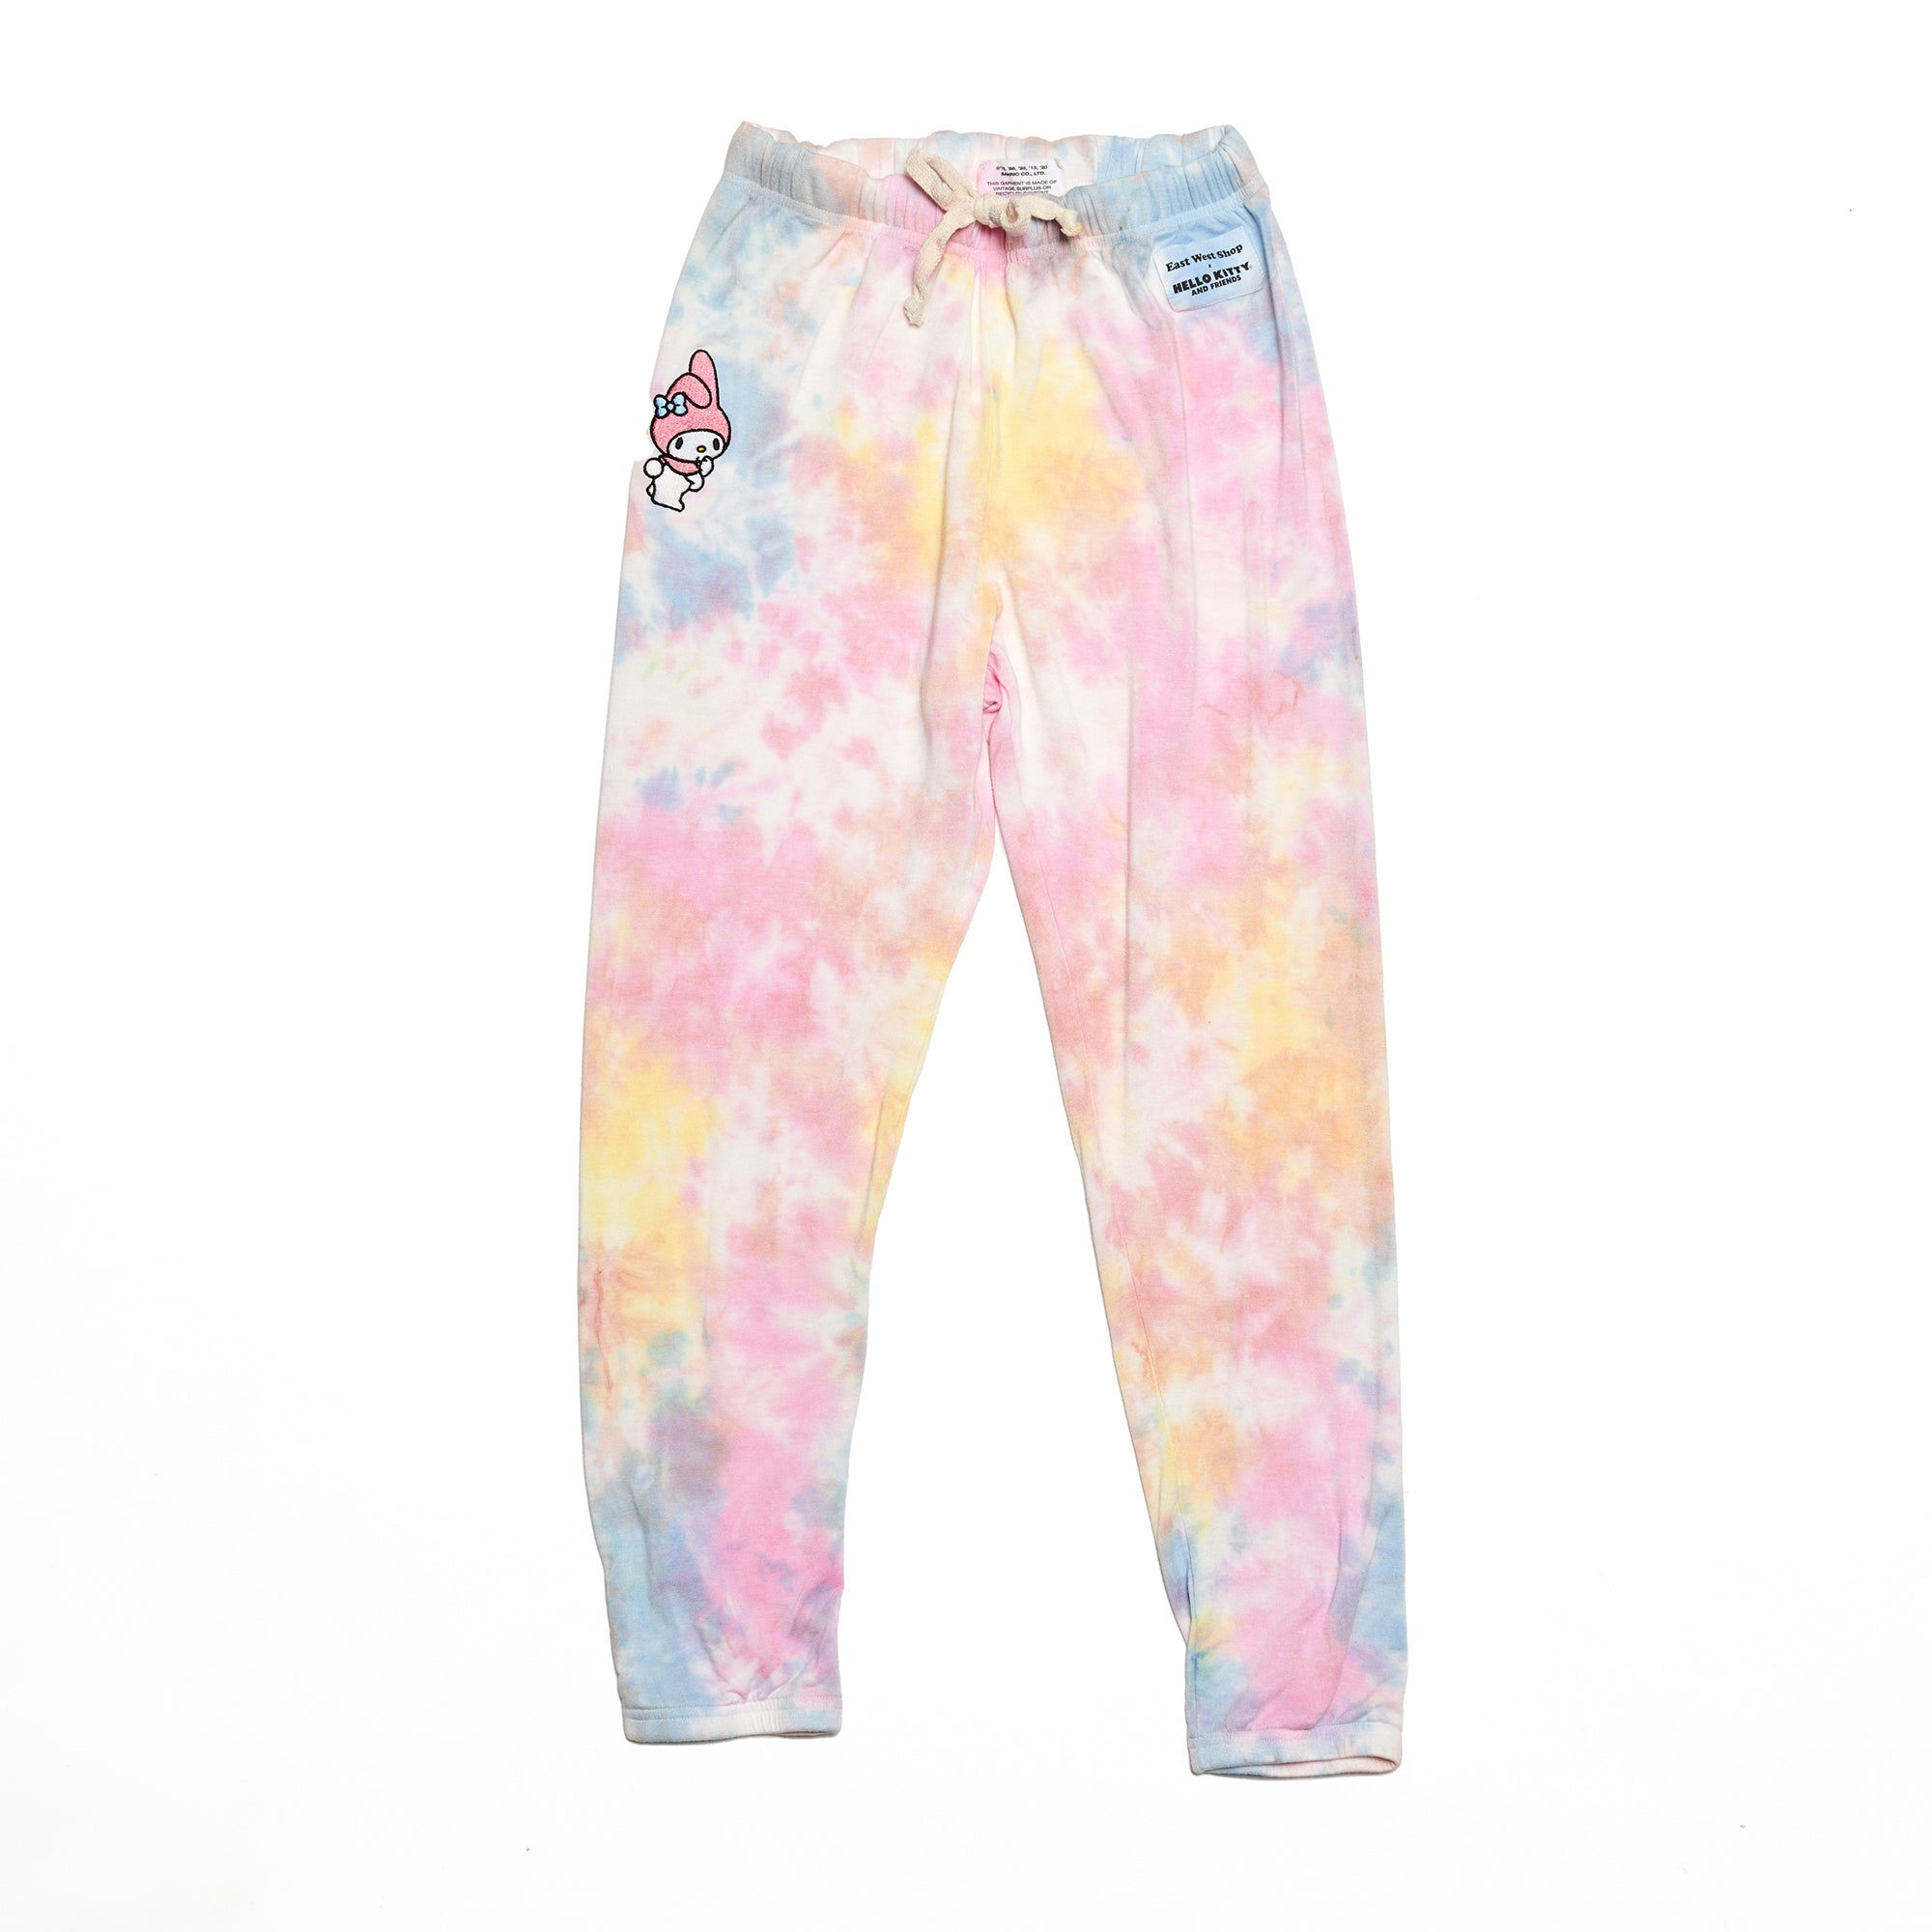 My Melody Sweatpants - Pastel Tie Dye